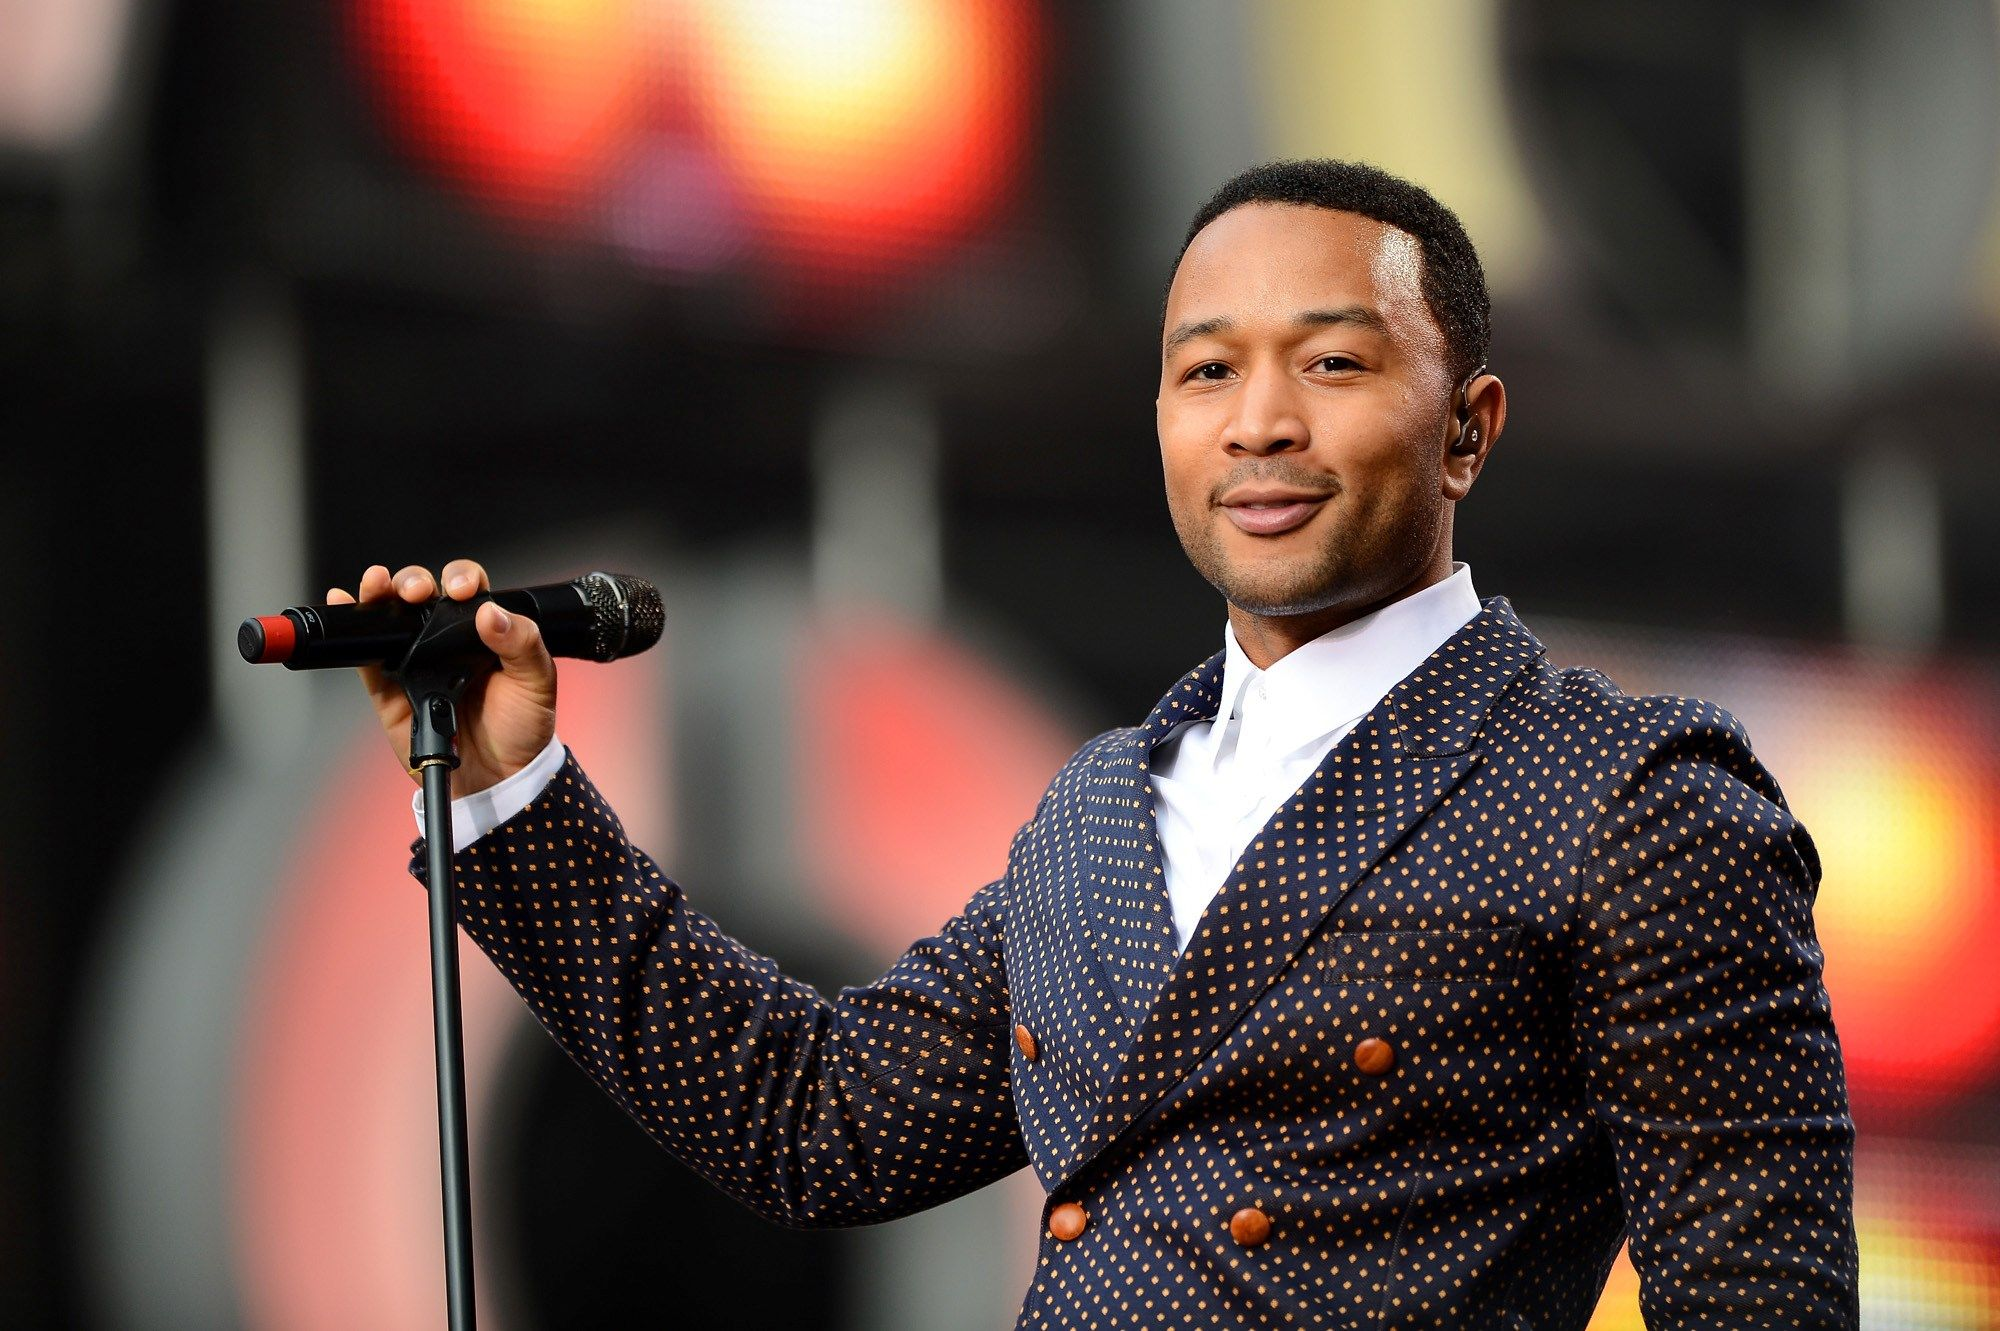 john legend 4k widescreen desktop wallpaper 1162